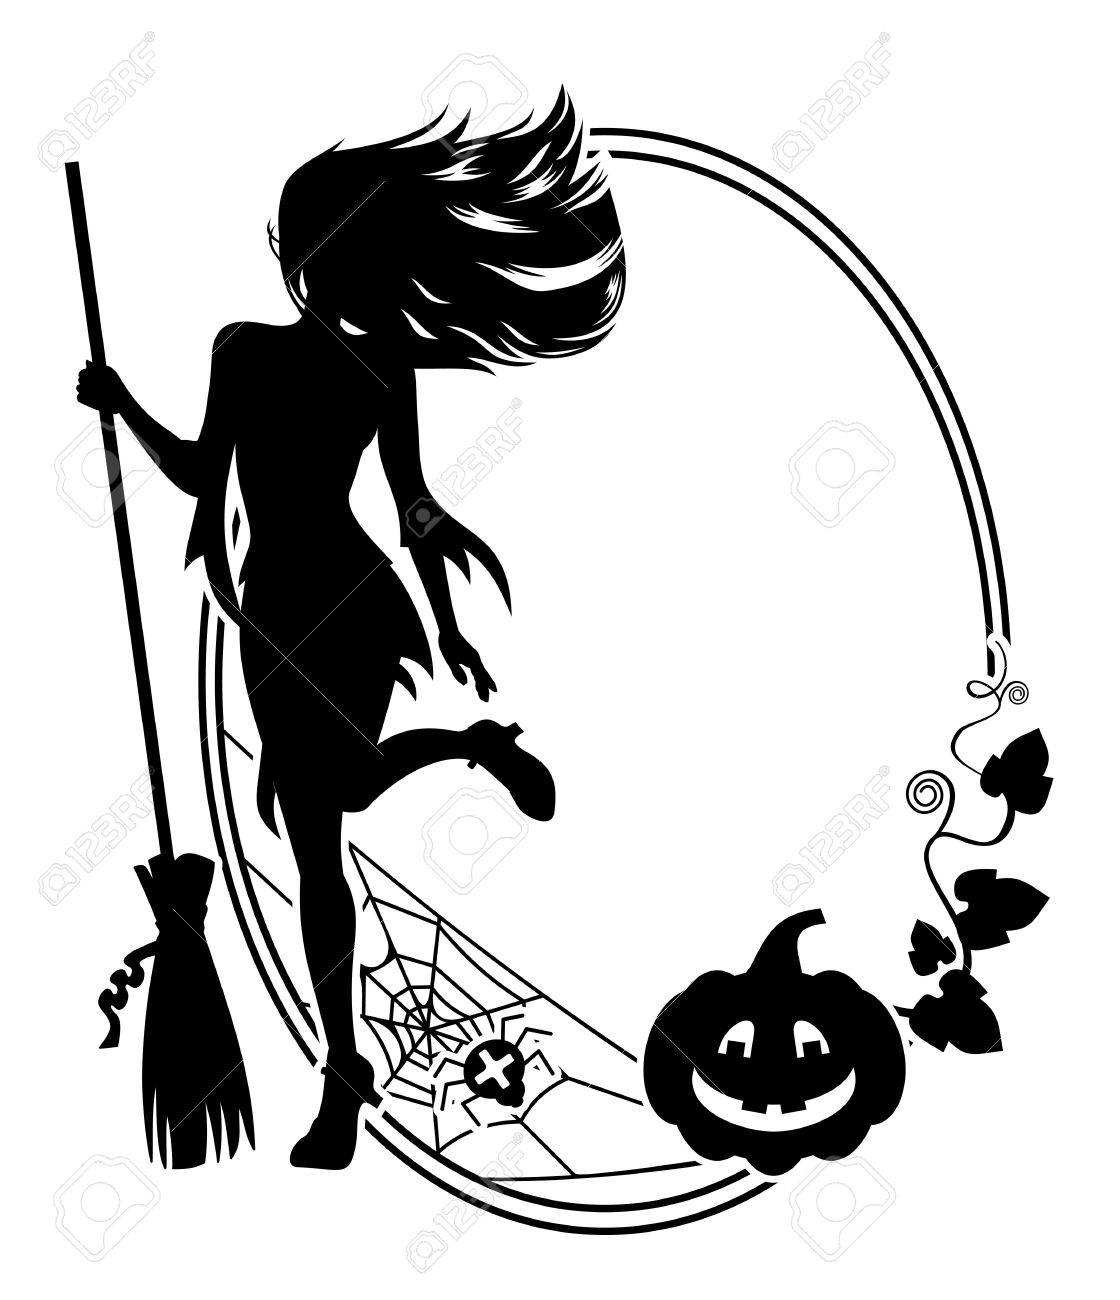 1120x1300 Silhouette Of A Young Girl In The Witch Costume, Broom, Spider